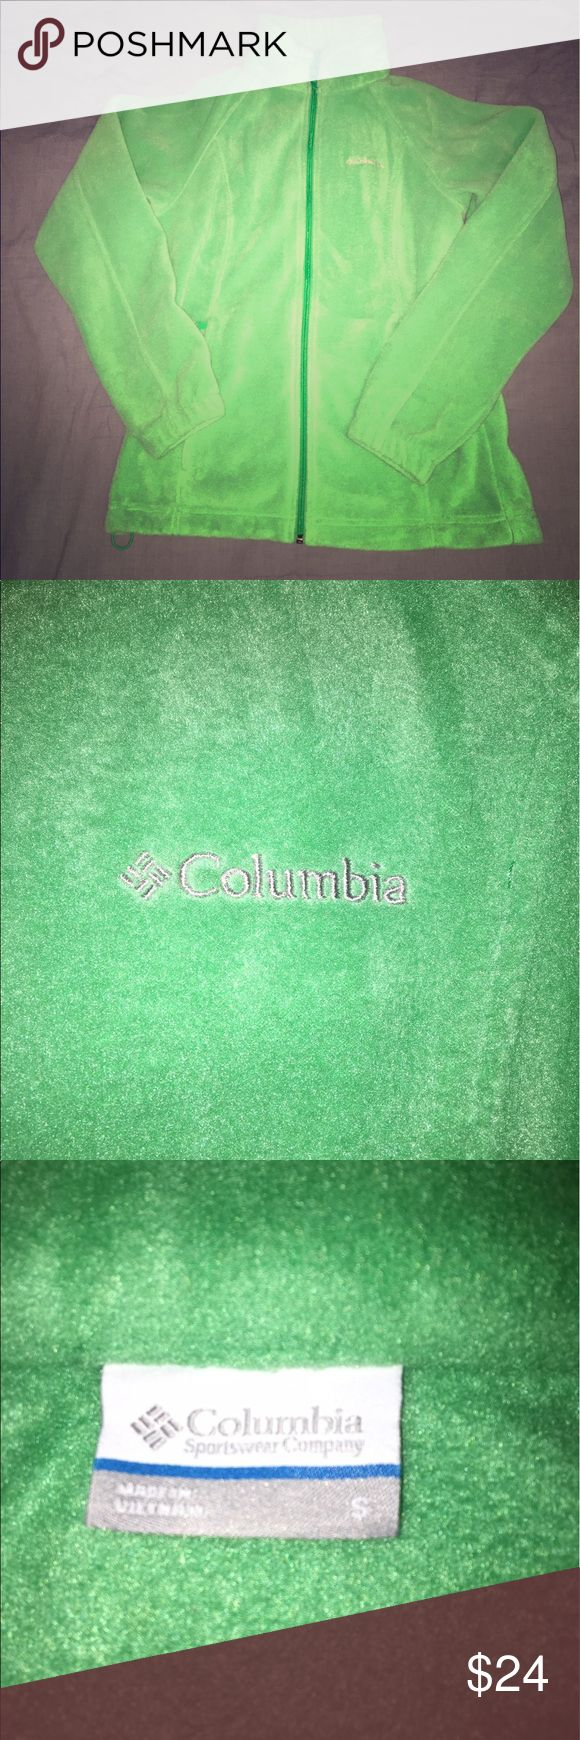 Colombia women's Benton springs fleece jacket This Columbia sportswear company fleece jacket is size small and is true to fit. I wore it once. It is in excellent condition - no stains or rips! One would think it is new. The color is one of a kind and very versatile. The comfortable fleece provides insulation while still being stylish. The jacket has an active slim fit so is very flattering. There are two zippered hand pockets. It is 100% polyester. Columbia Jackets & Coats